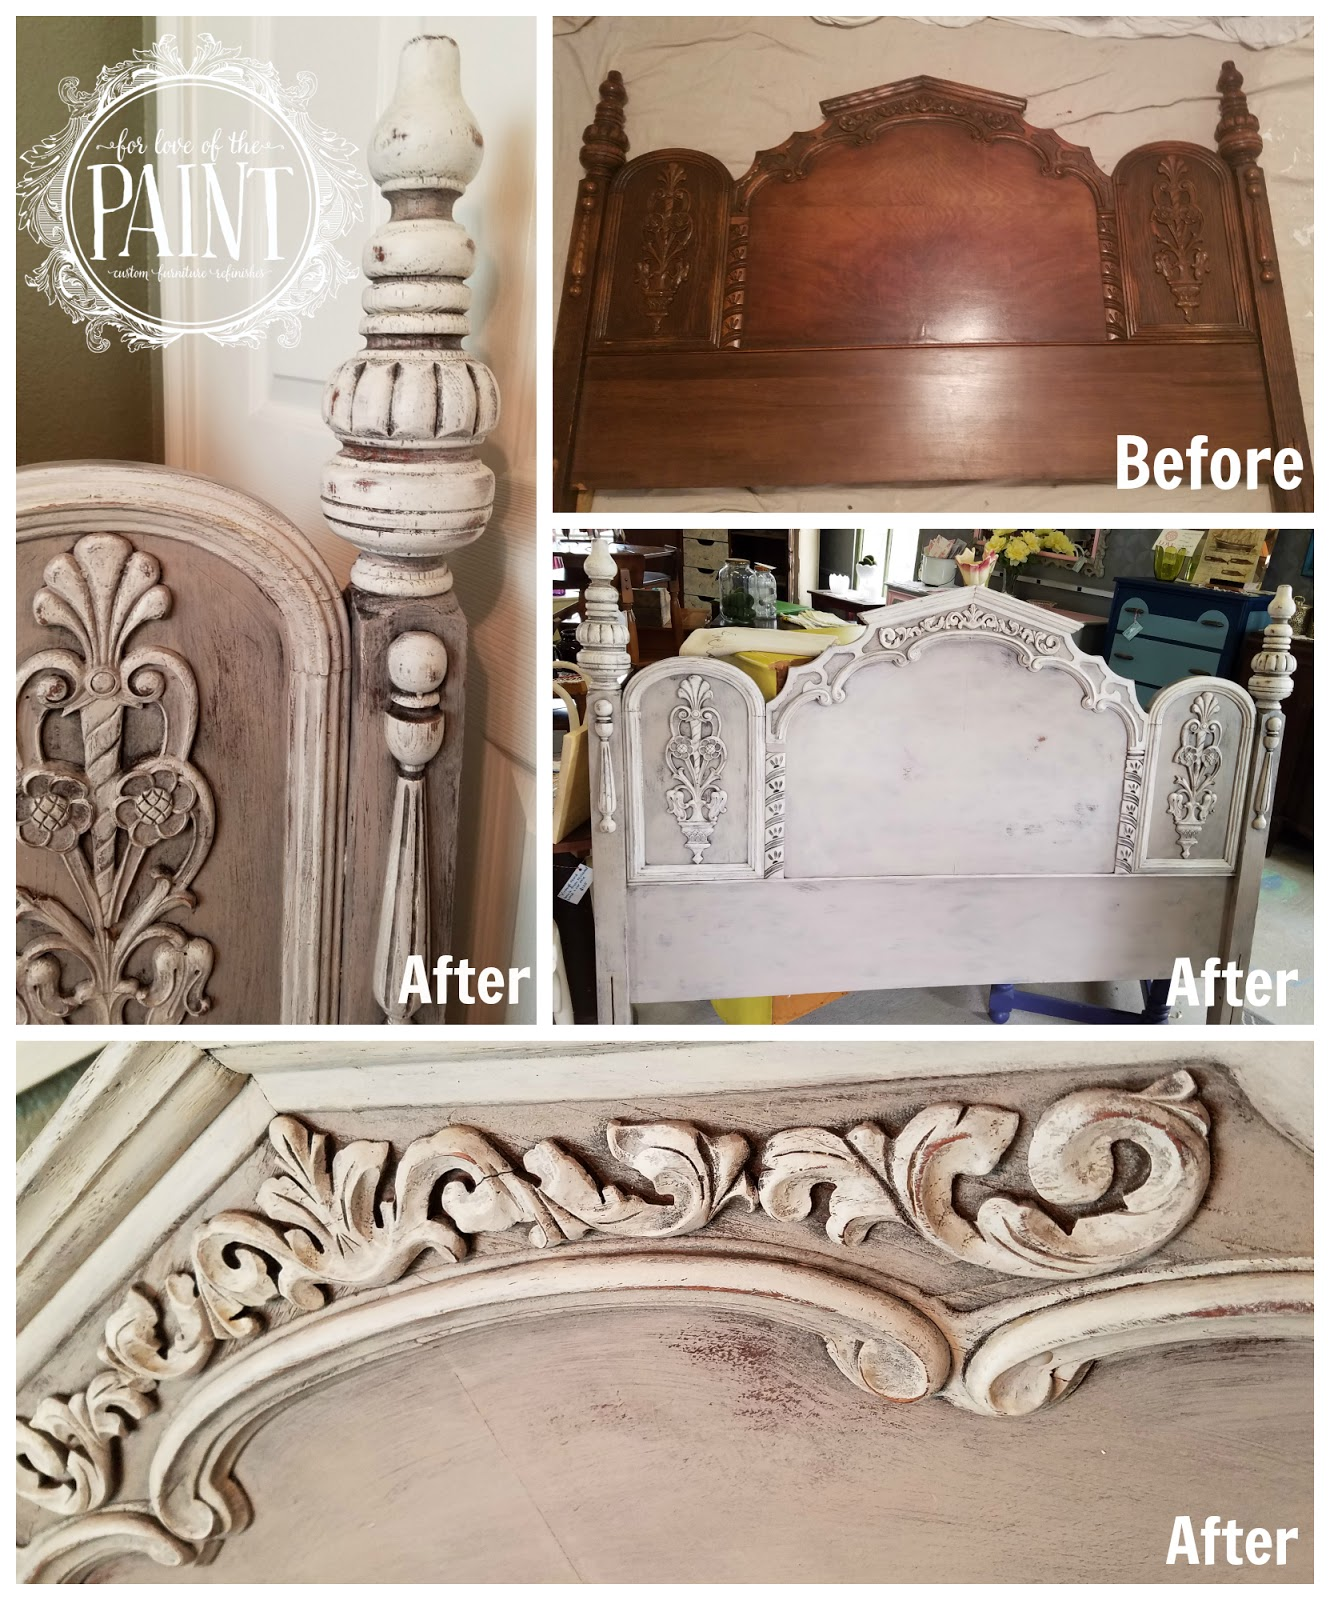 For love of the paint before and after ornate vintage for Painted on headboard